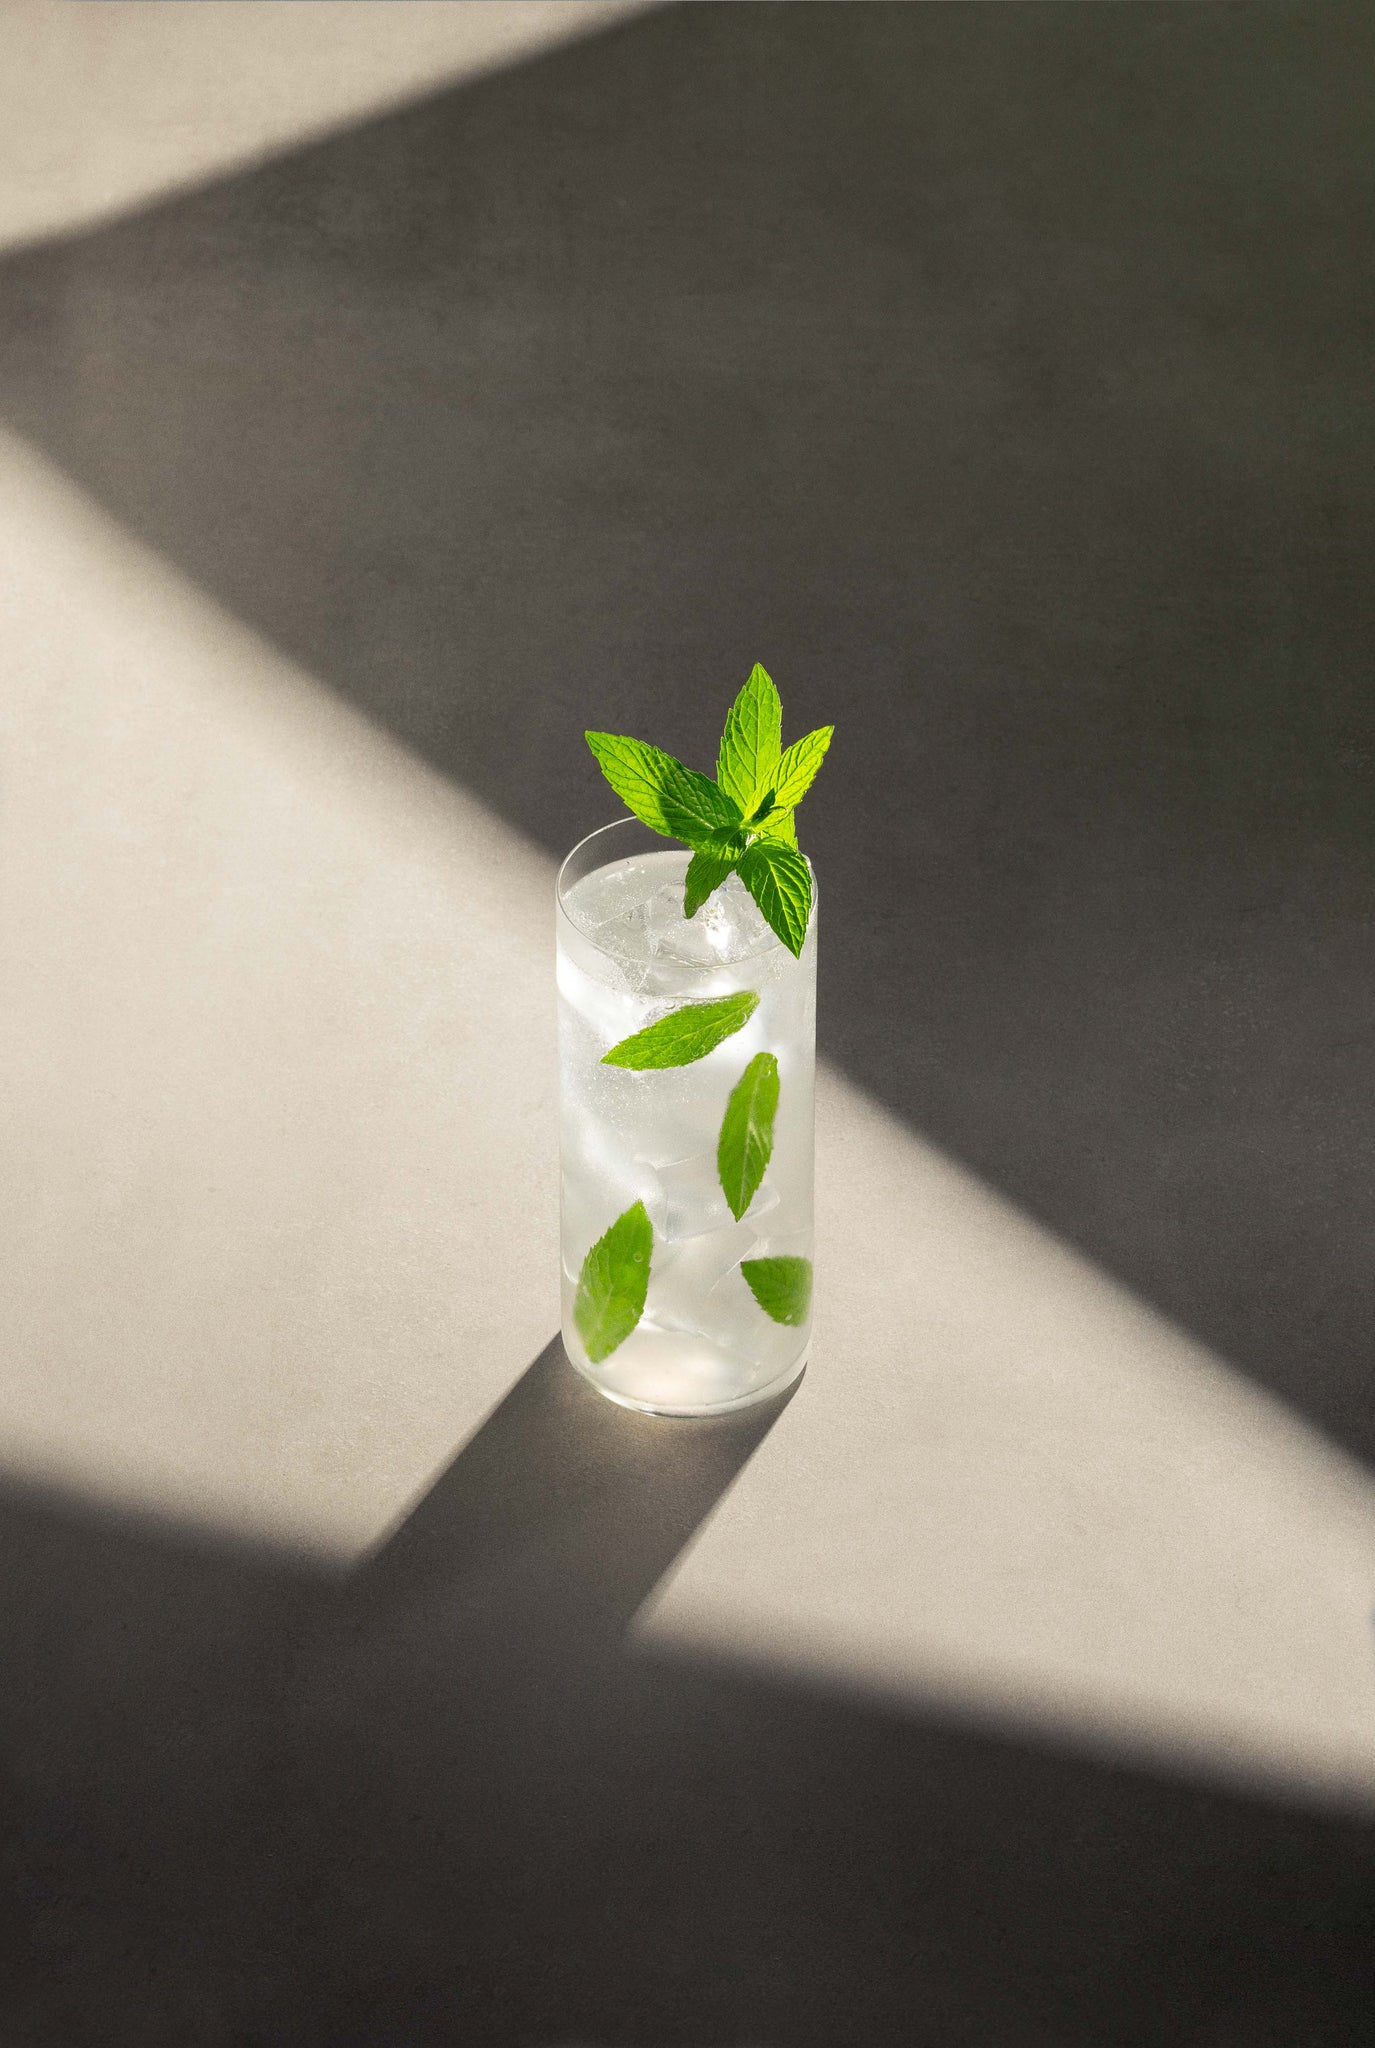 Black Lines Mojito cocktail in a clear highball glass with cubed ice and garnished with mint leaves